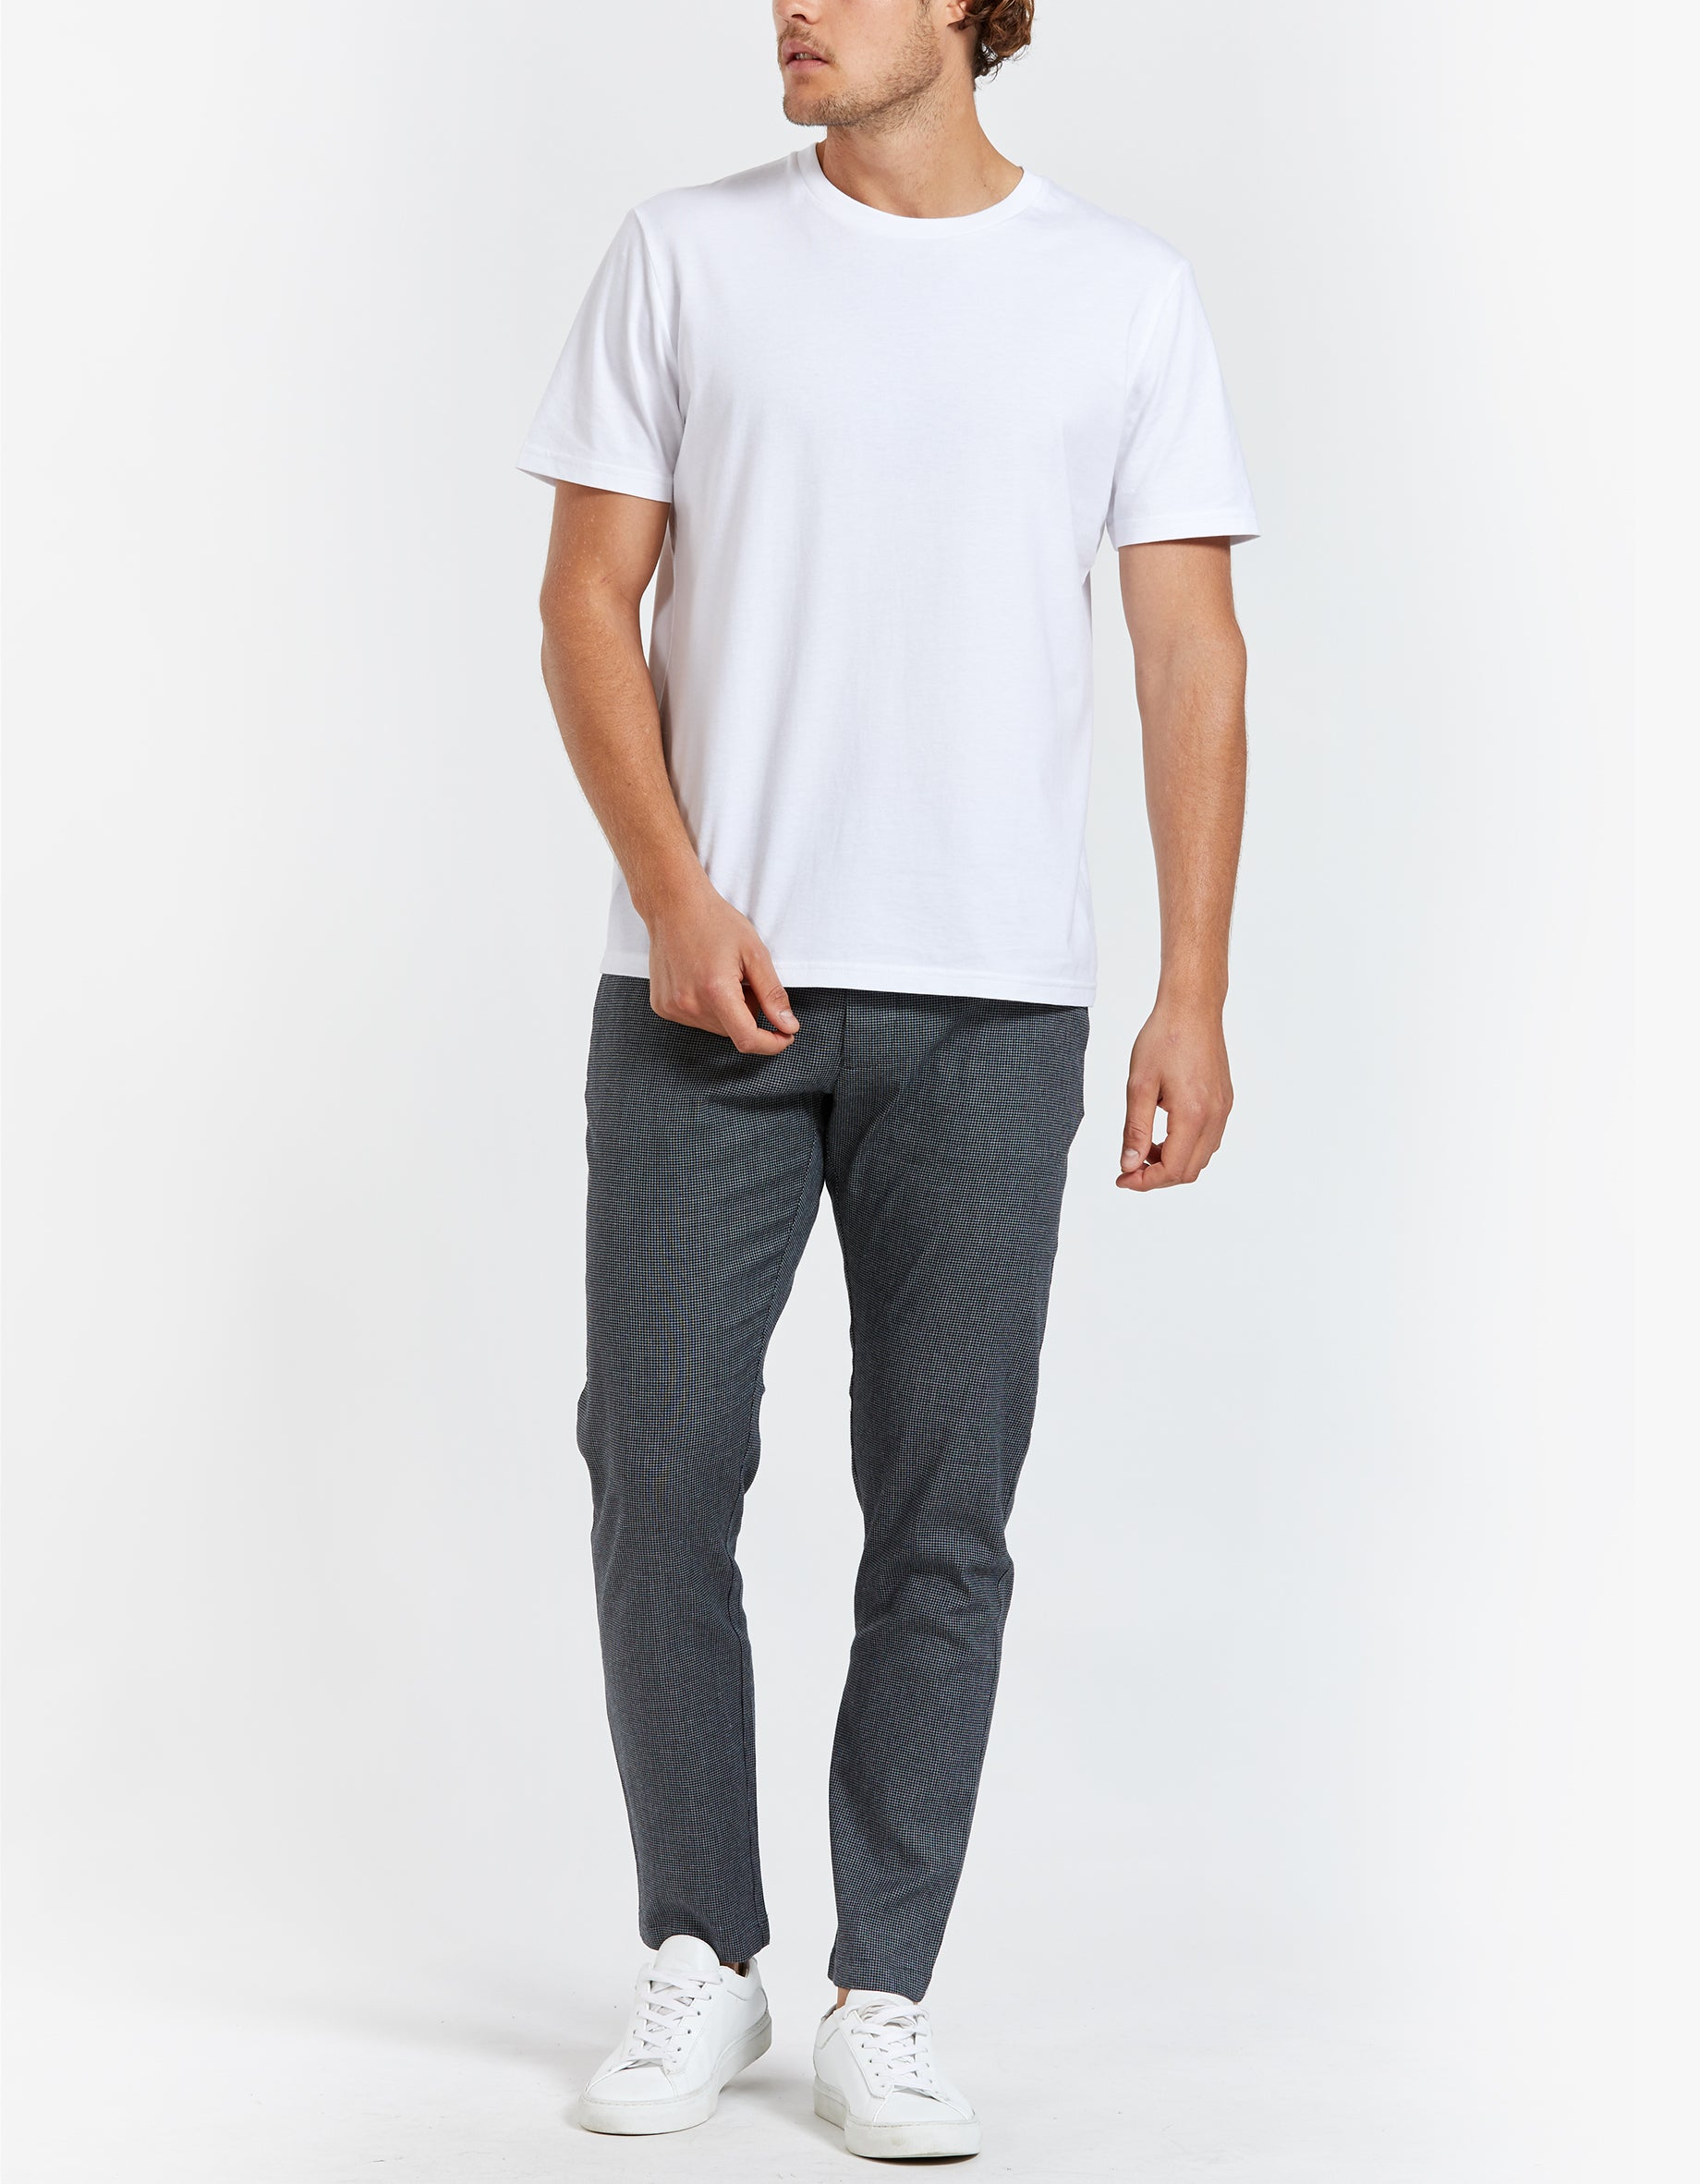 Andy X Trousers - Grey Melange Check